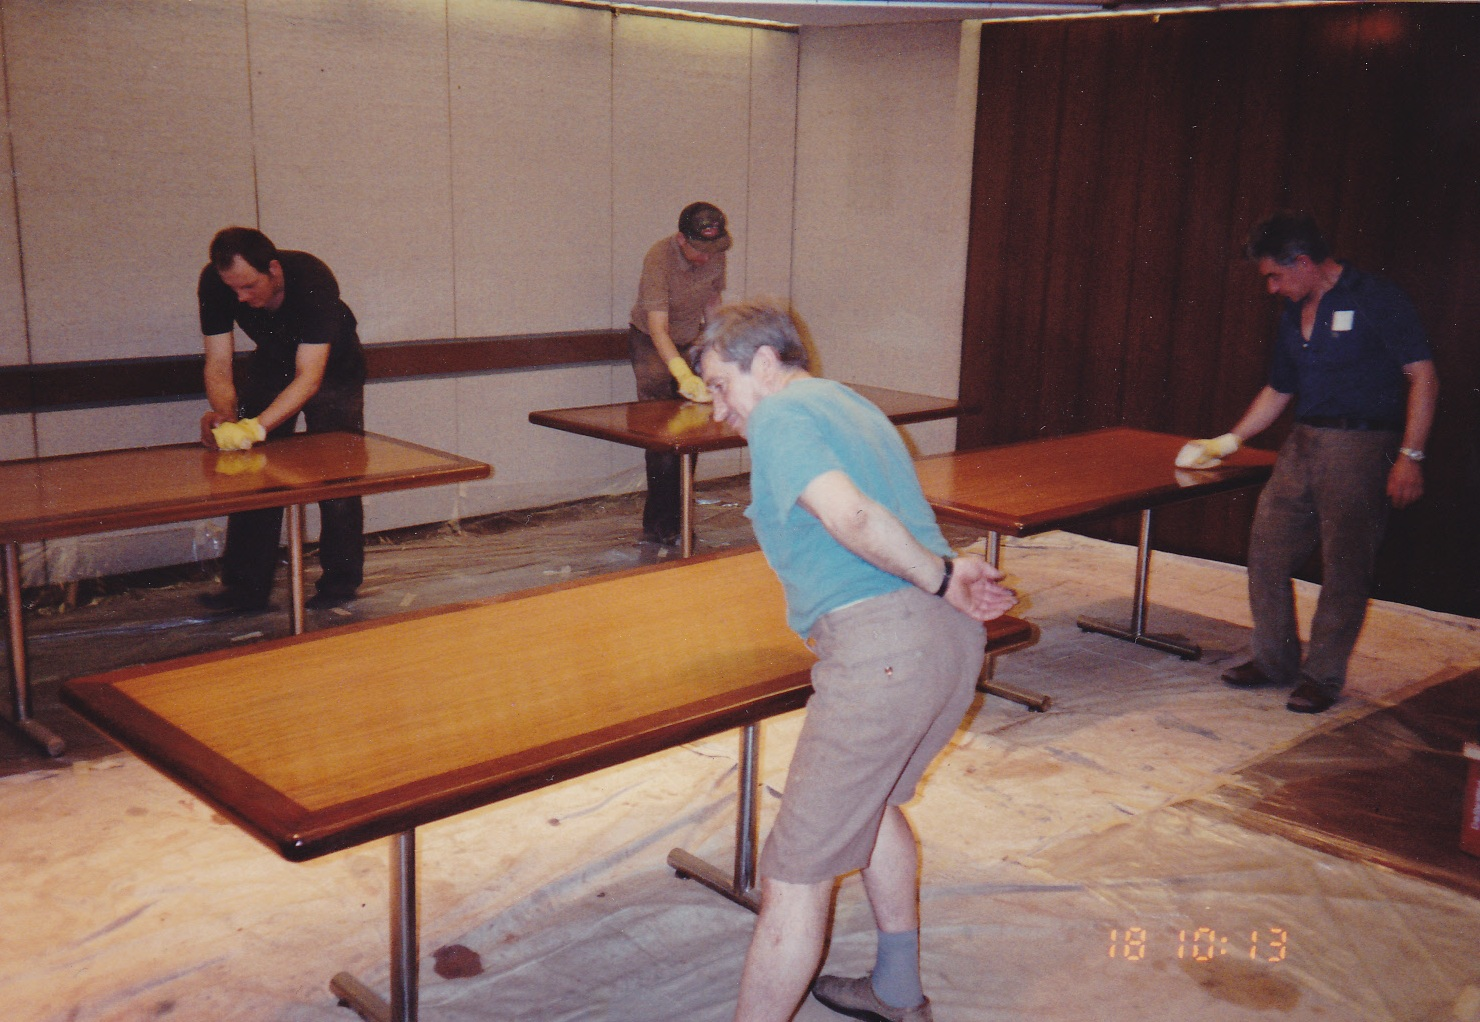 Conference room tables refinished on-site